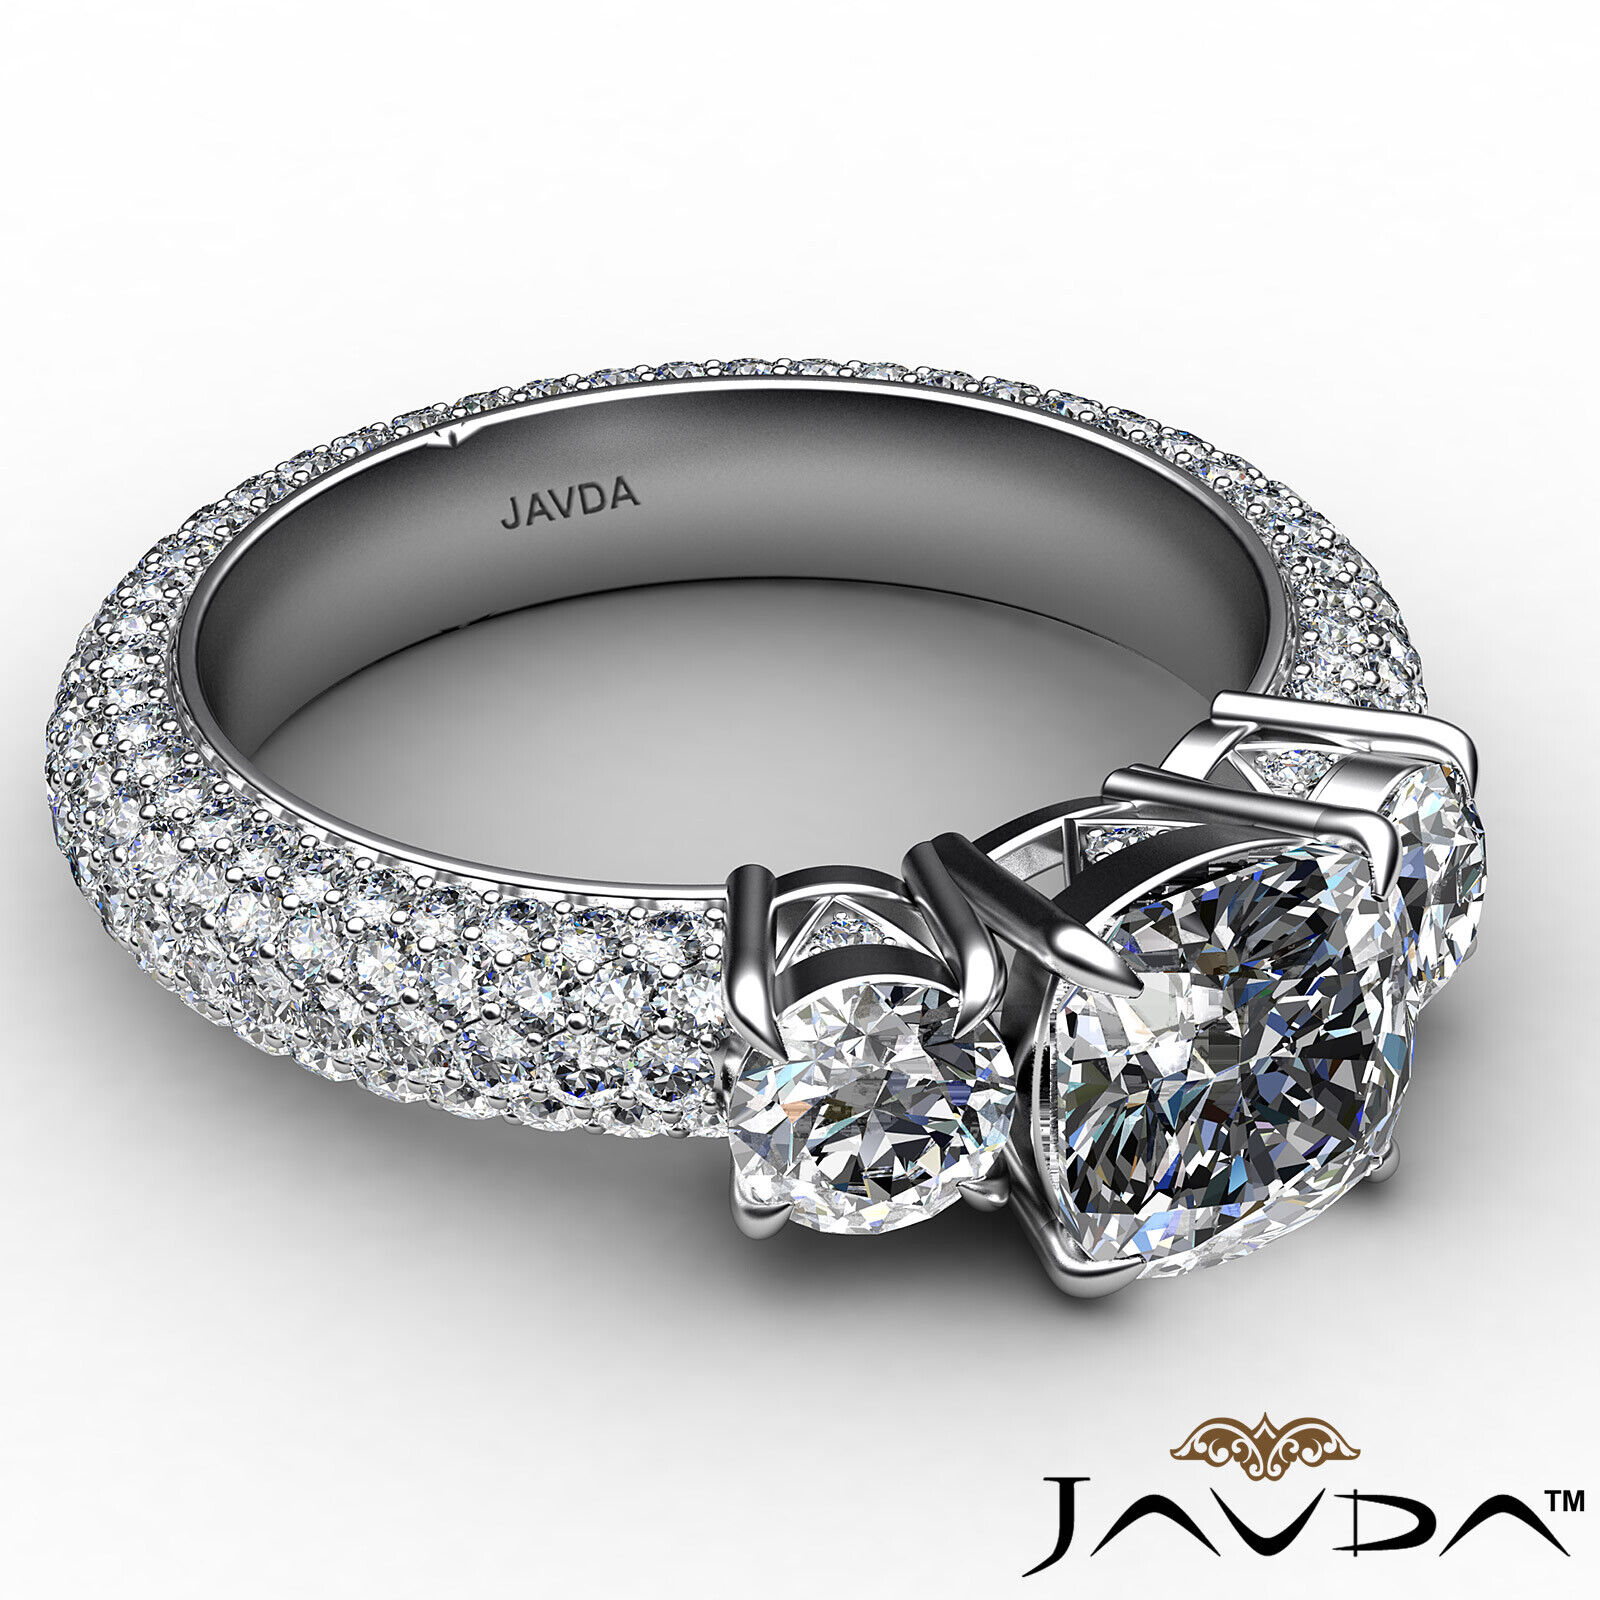 Cushion Diamond Engagement Ring Certified by GIA, G Color & SI1 clarity 3.44 ctw 6